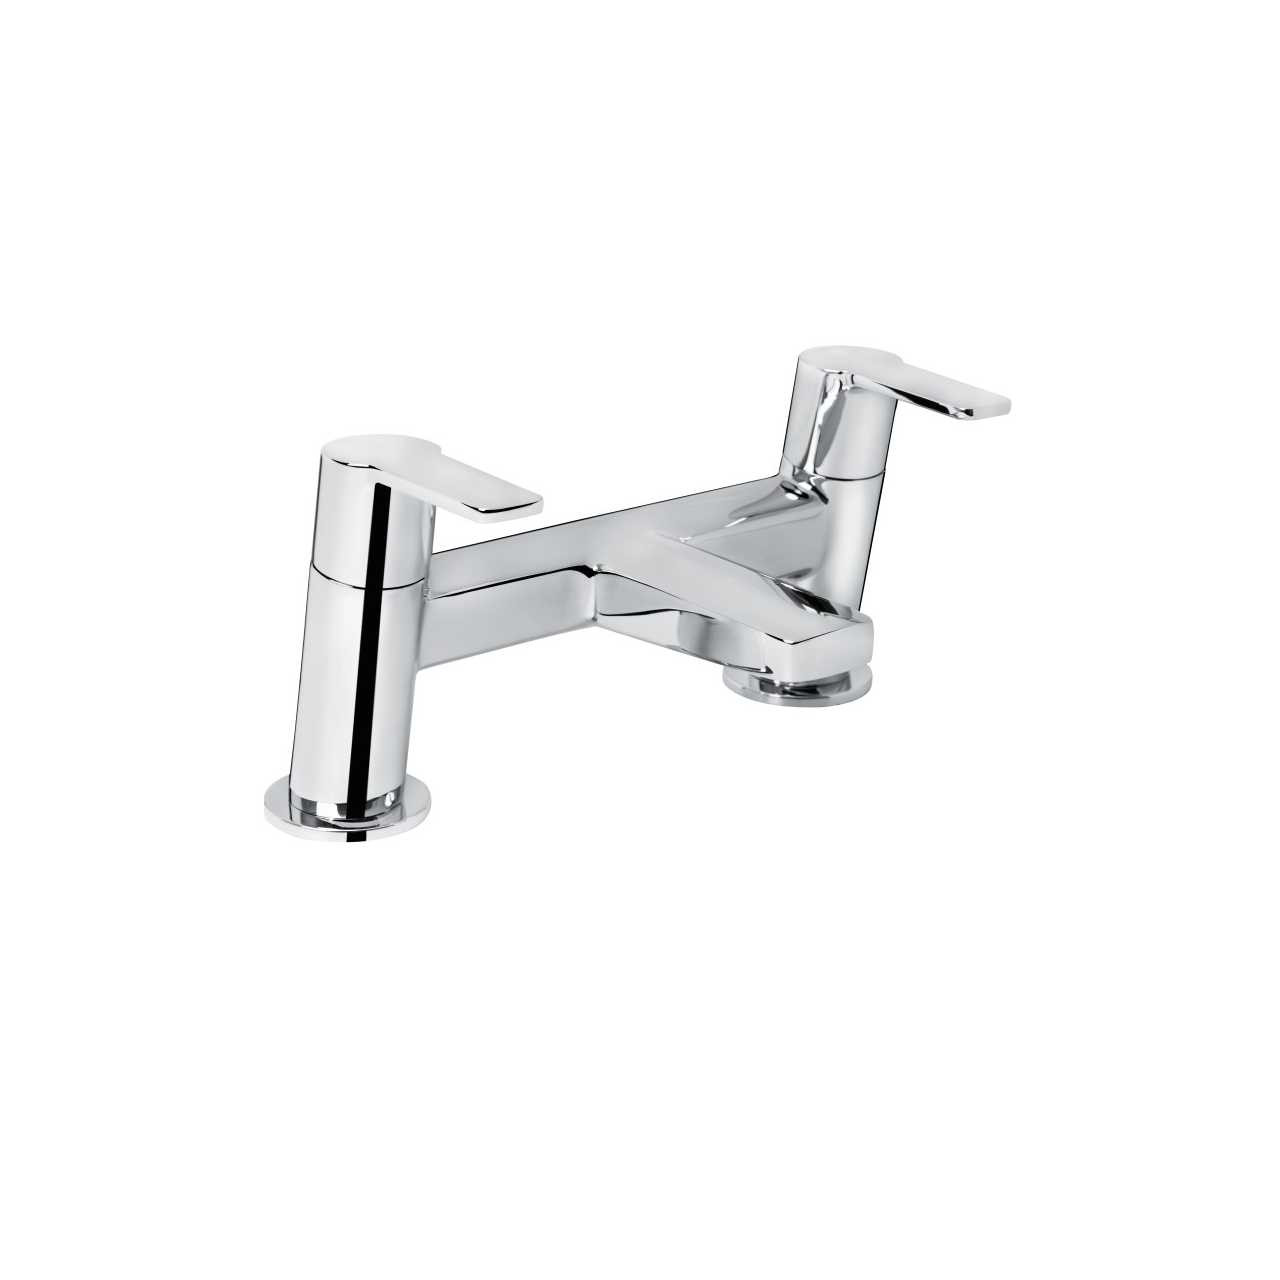 Bristan Pisa 2 Chrome Bath Filler Tap - PS2-BF-C